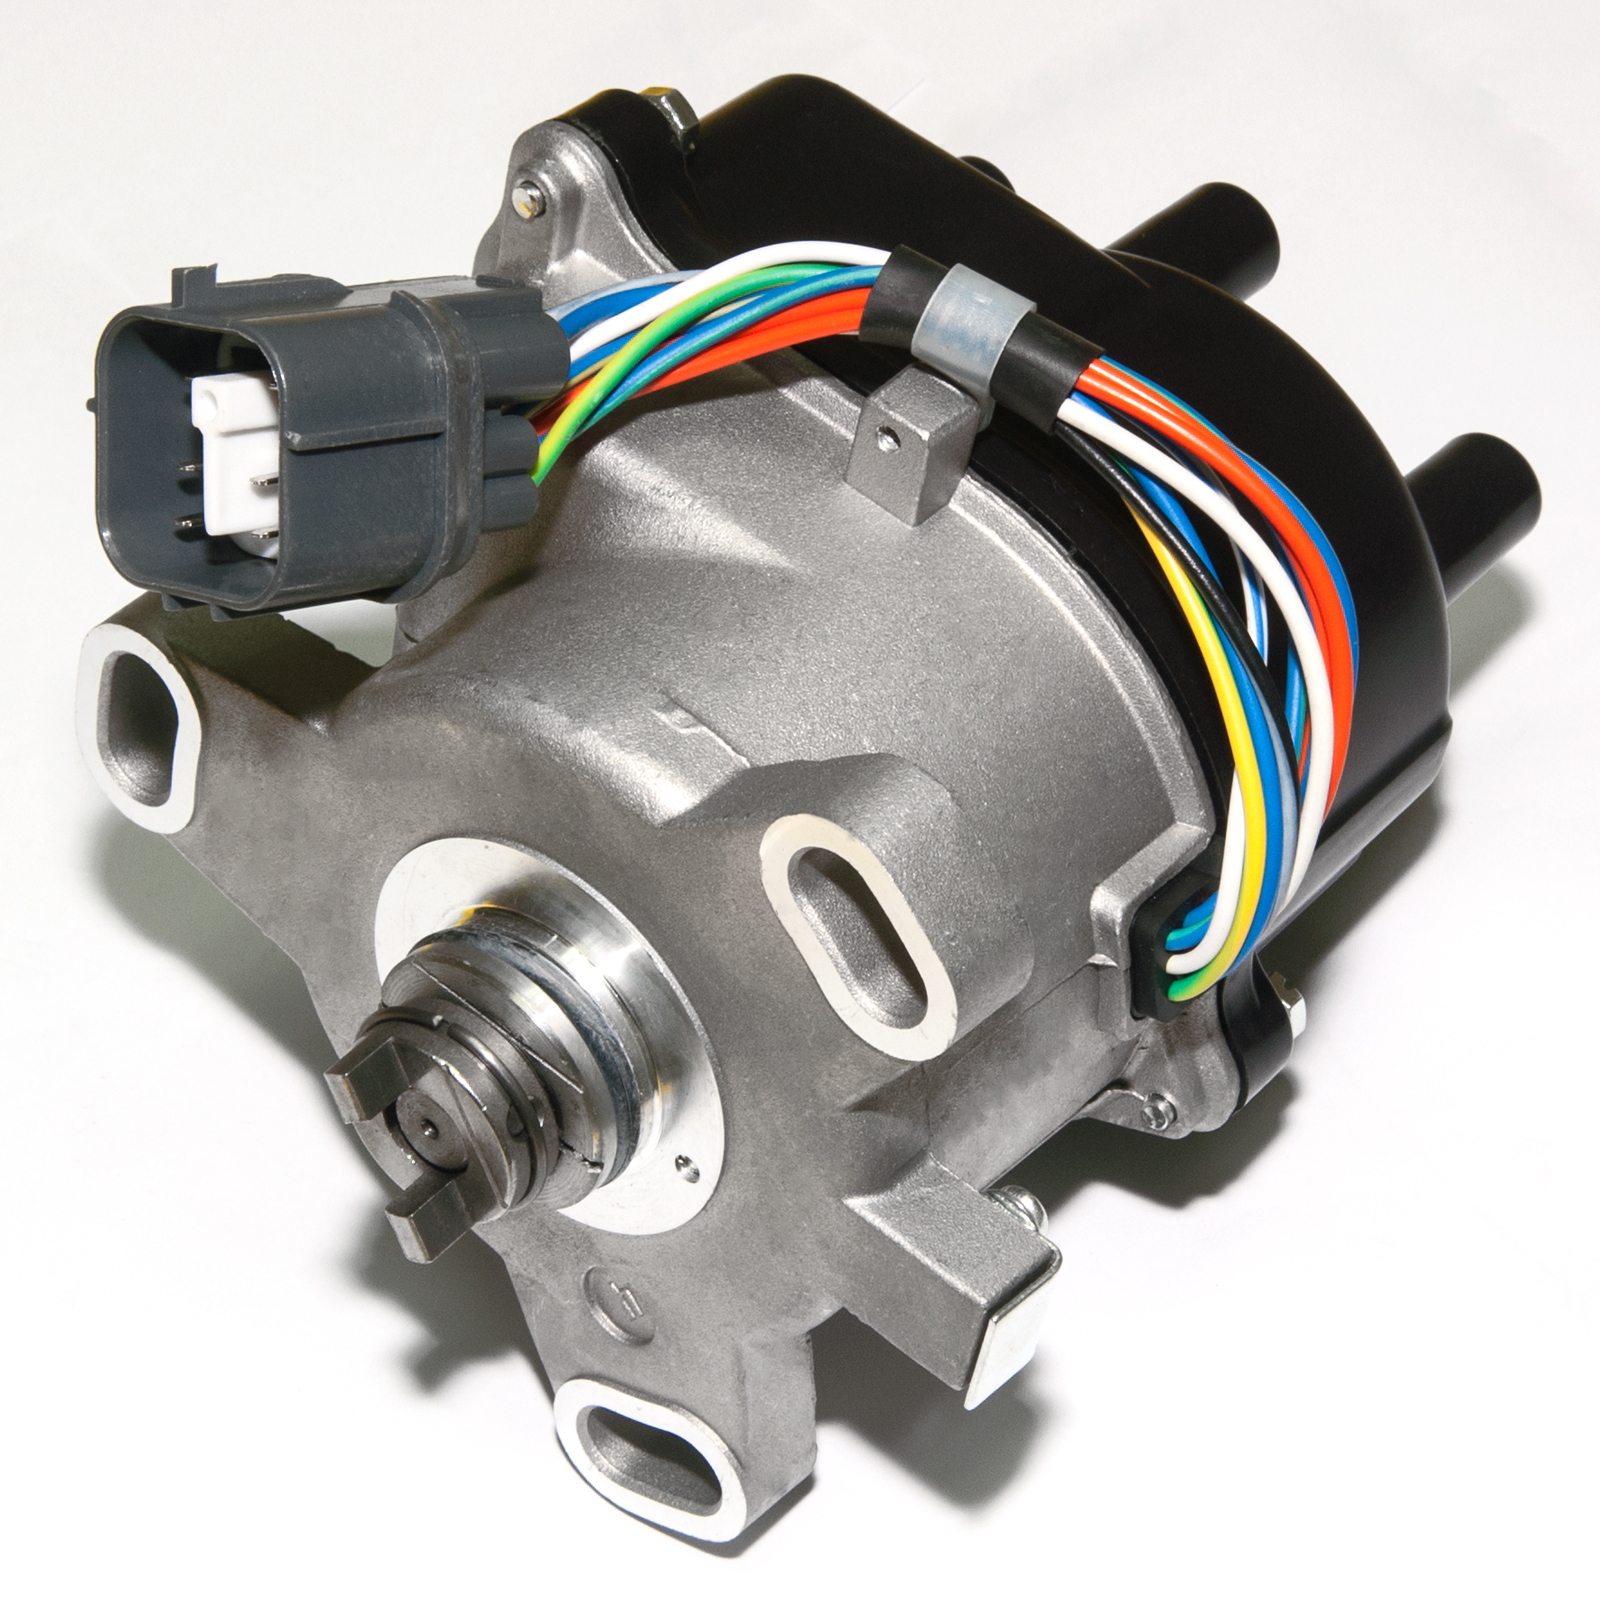 For 96-01 Acura Integra LS RS SE 1.8L OBD2 TD85U Ignition